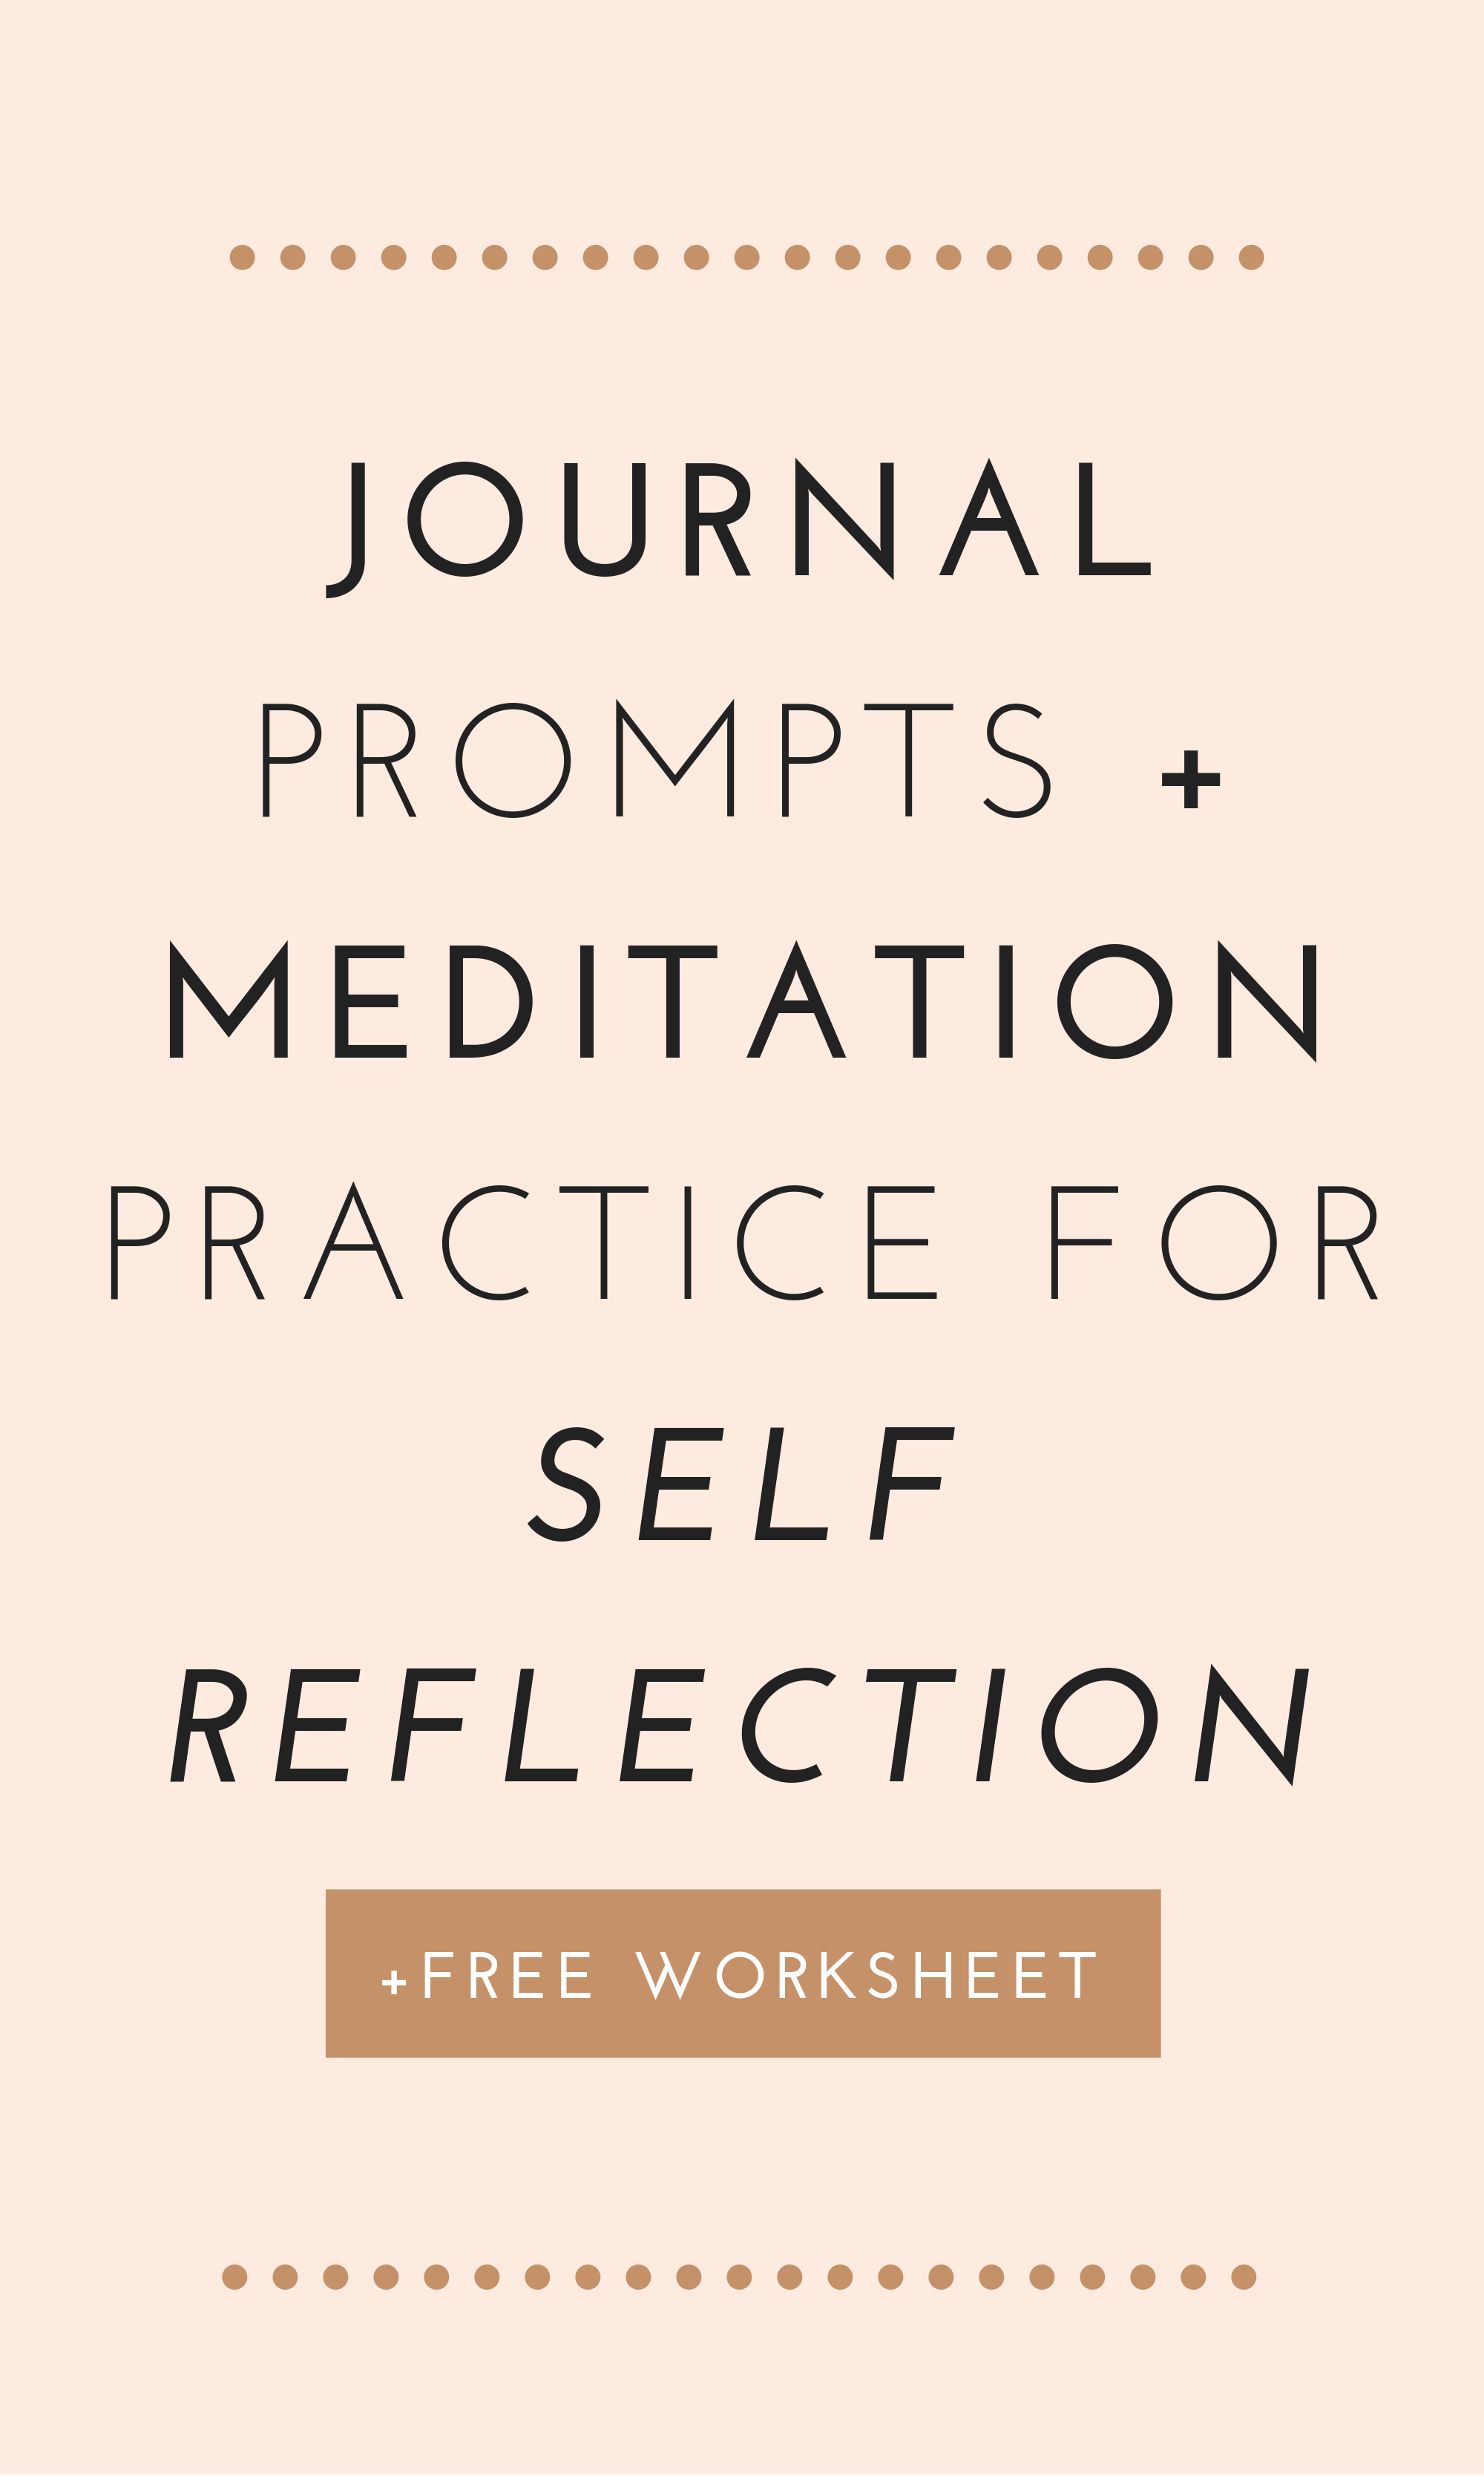 Journal Prompts And Meditation Practice For Self